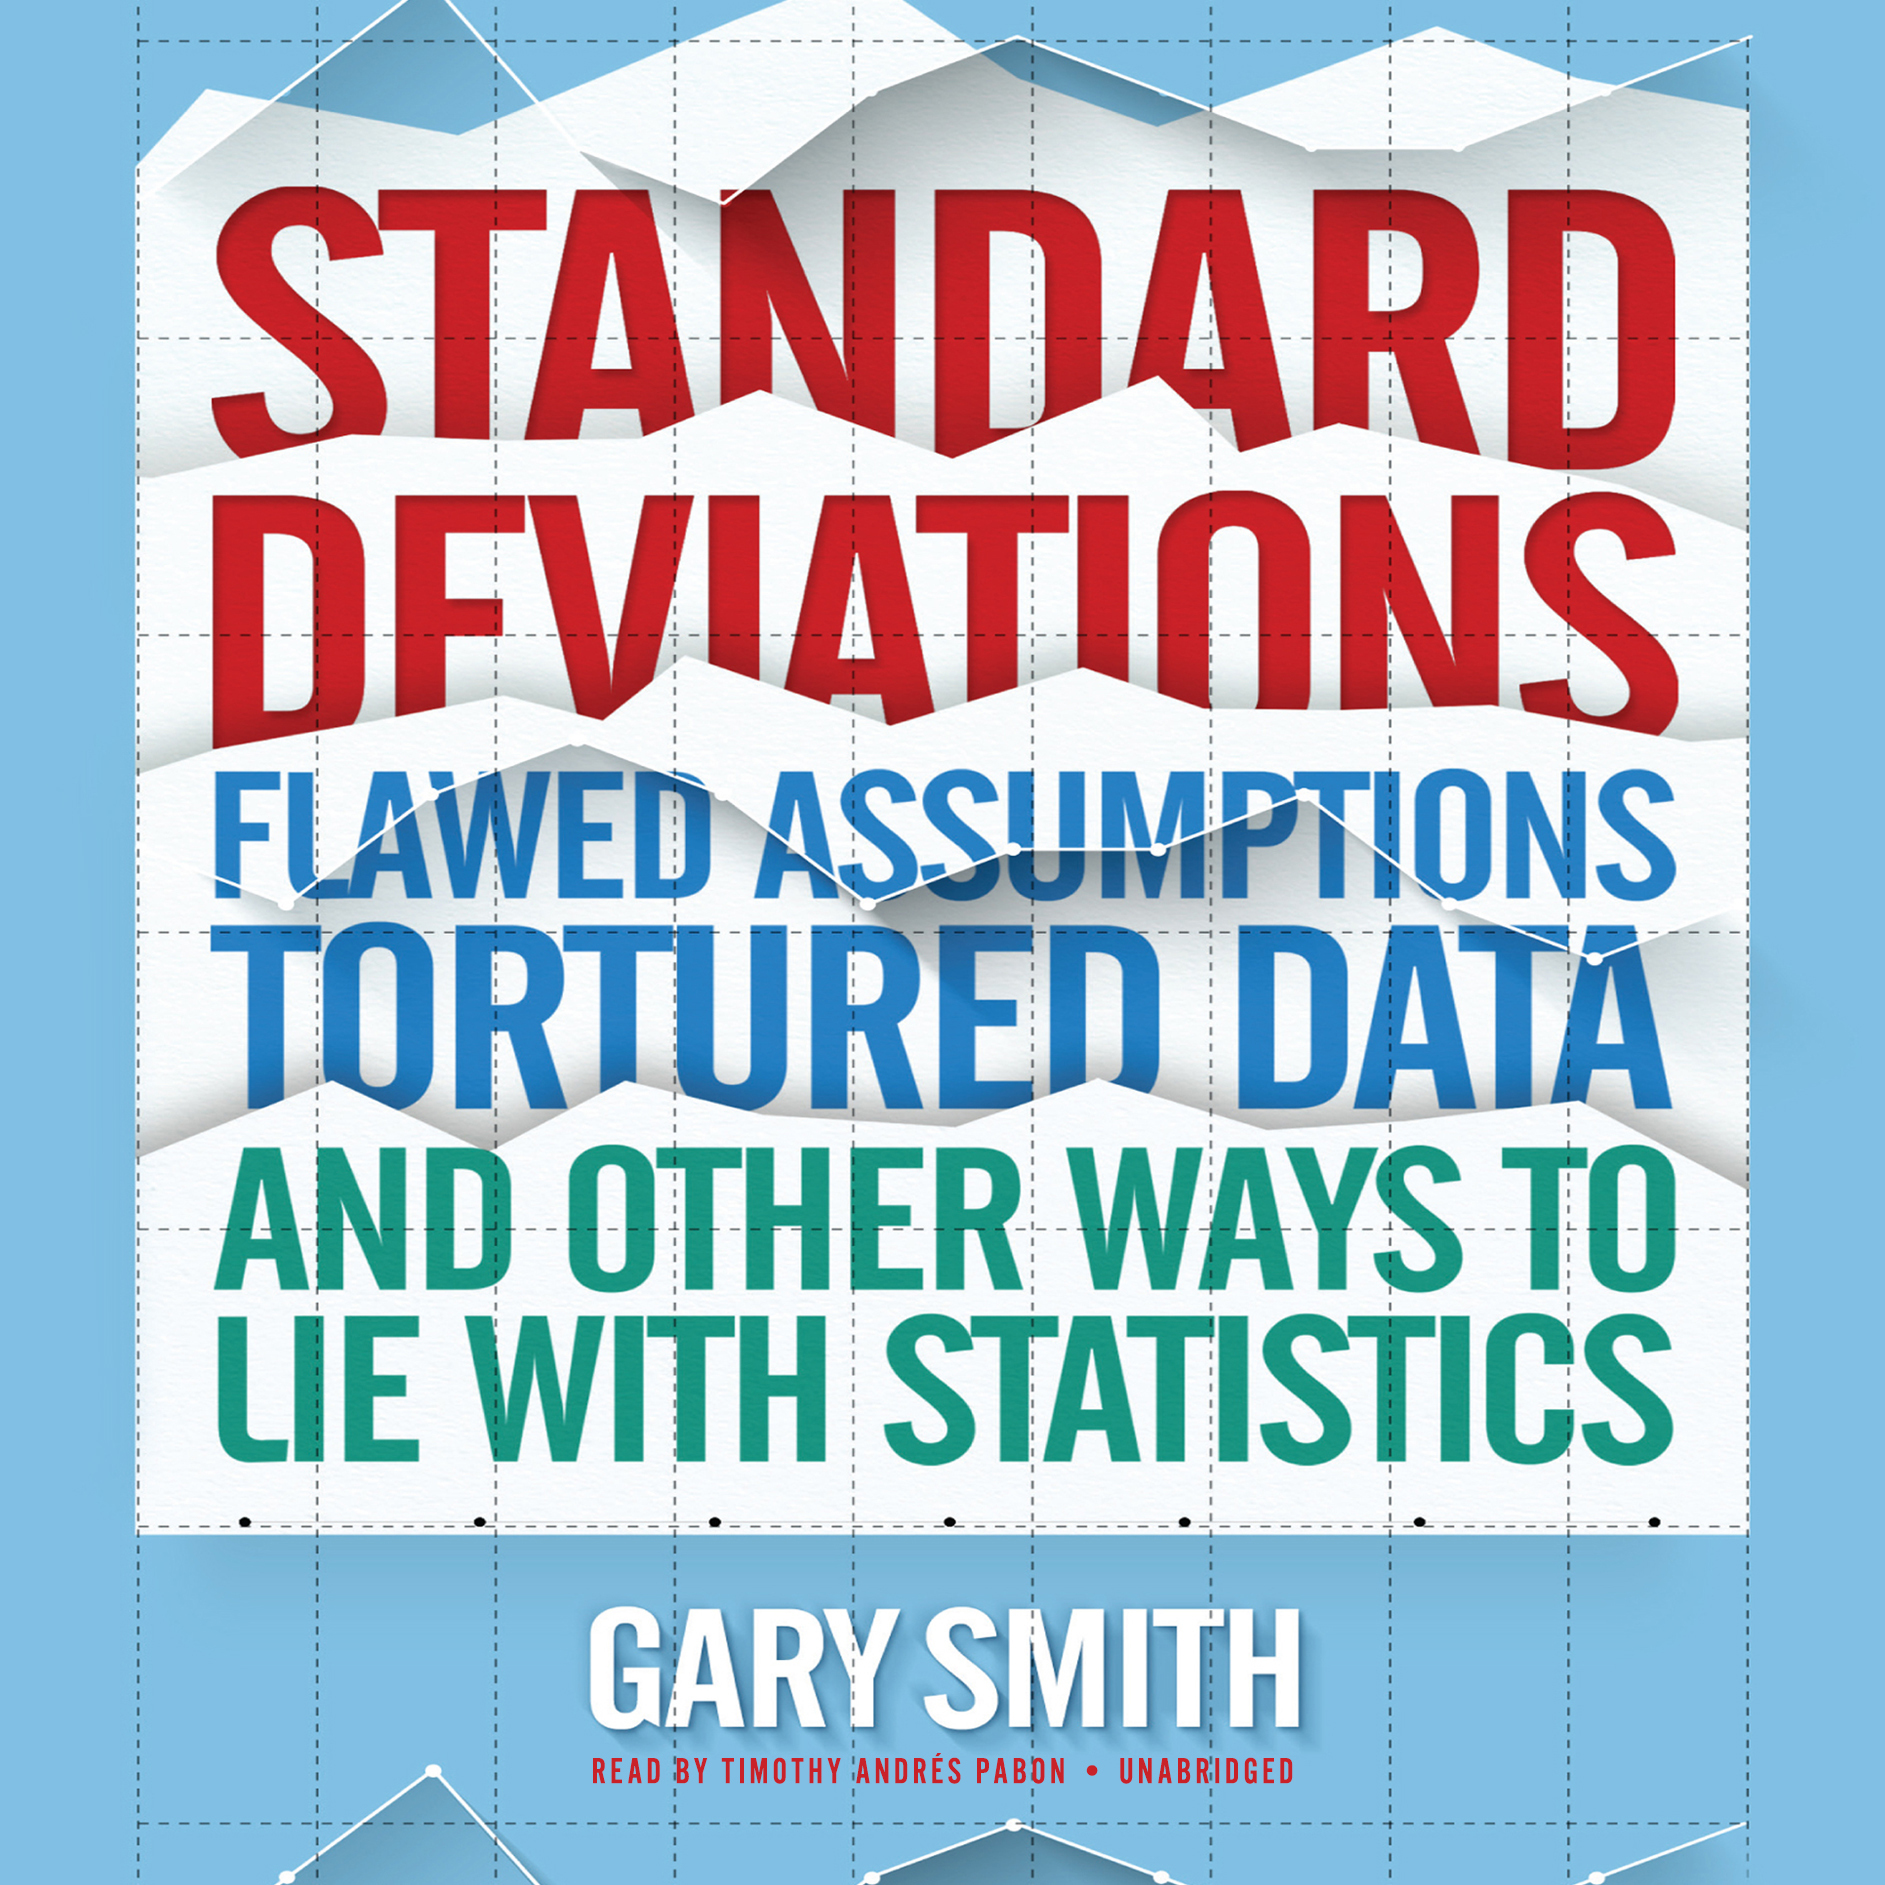 Printable Standard Deviations: Flawed Assumptions, Tortured Data, and Other Ways to Lie with Statistics Audiobook Cover Art